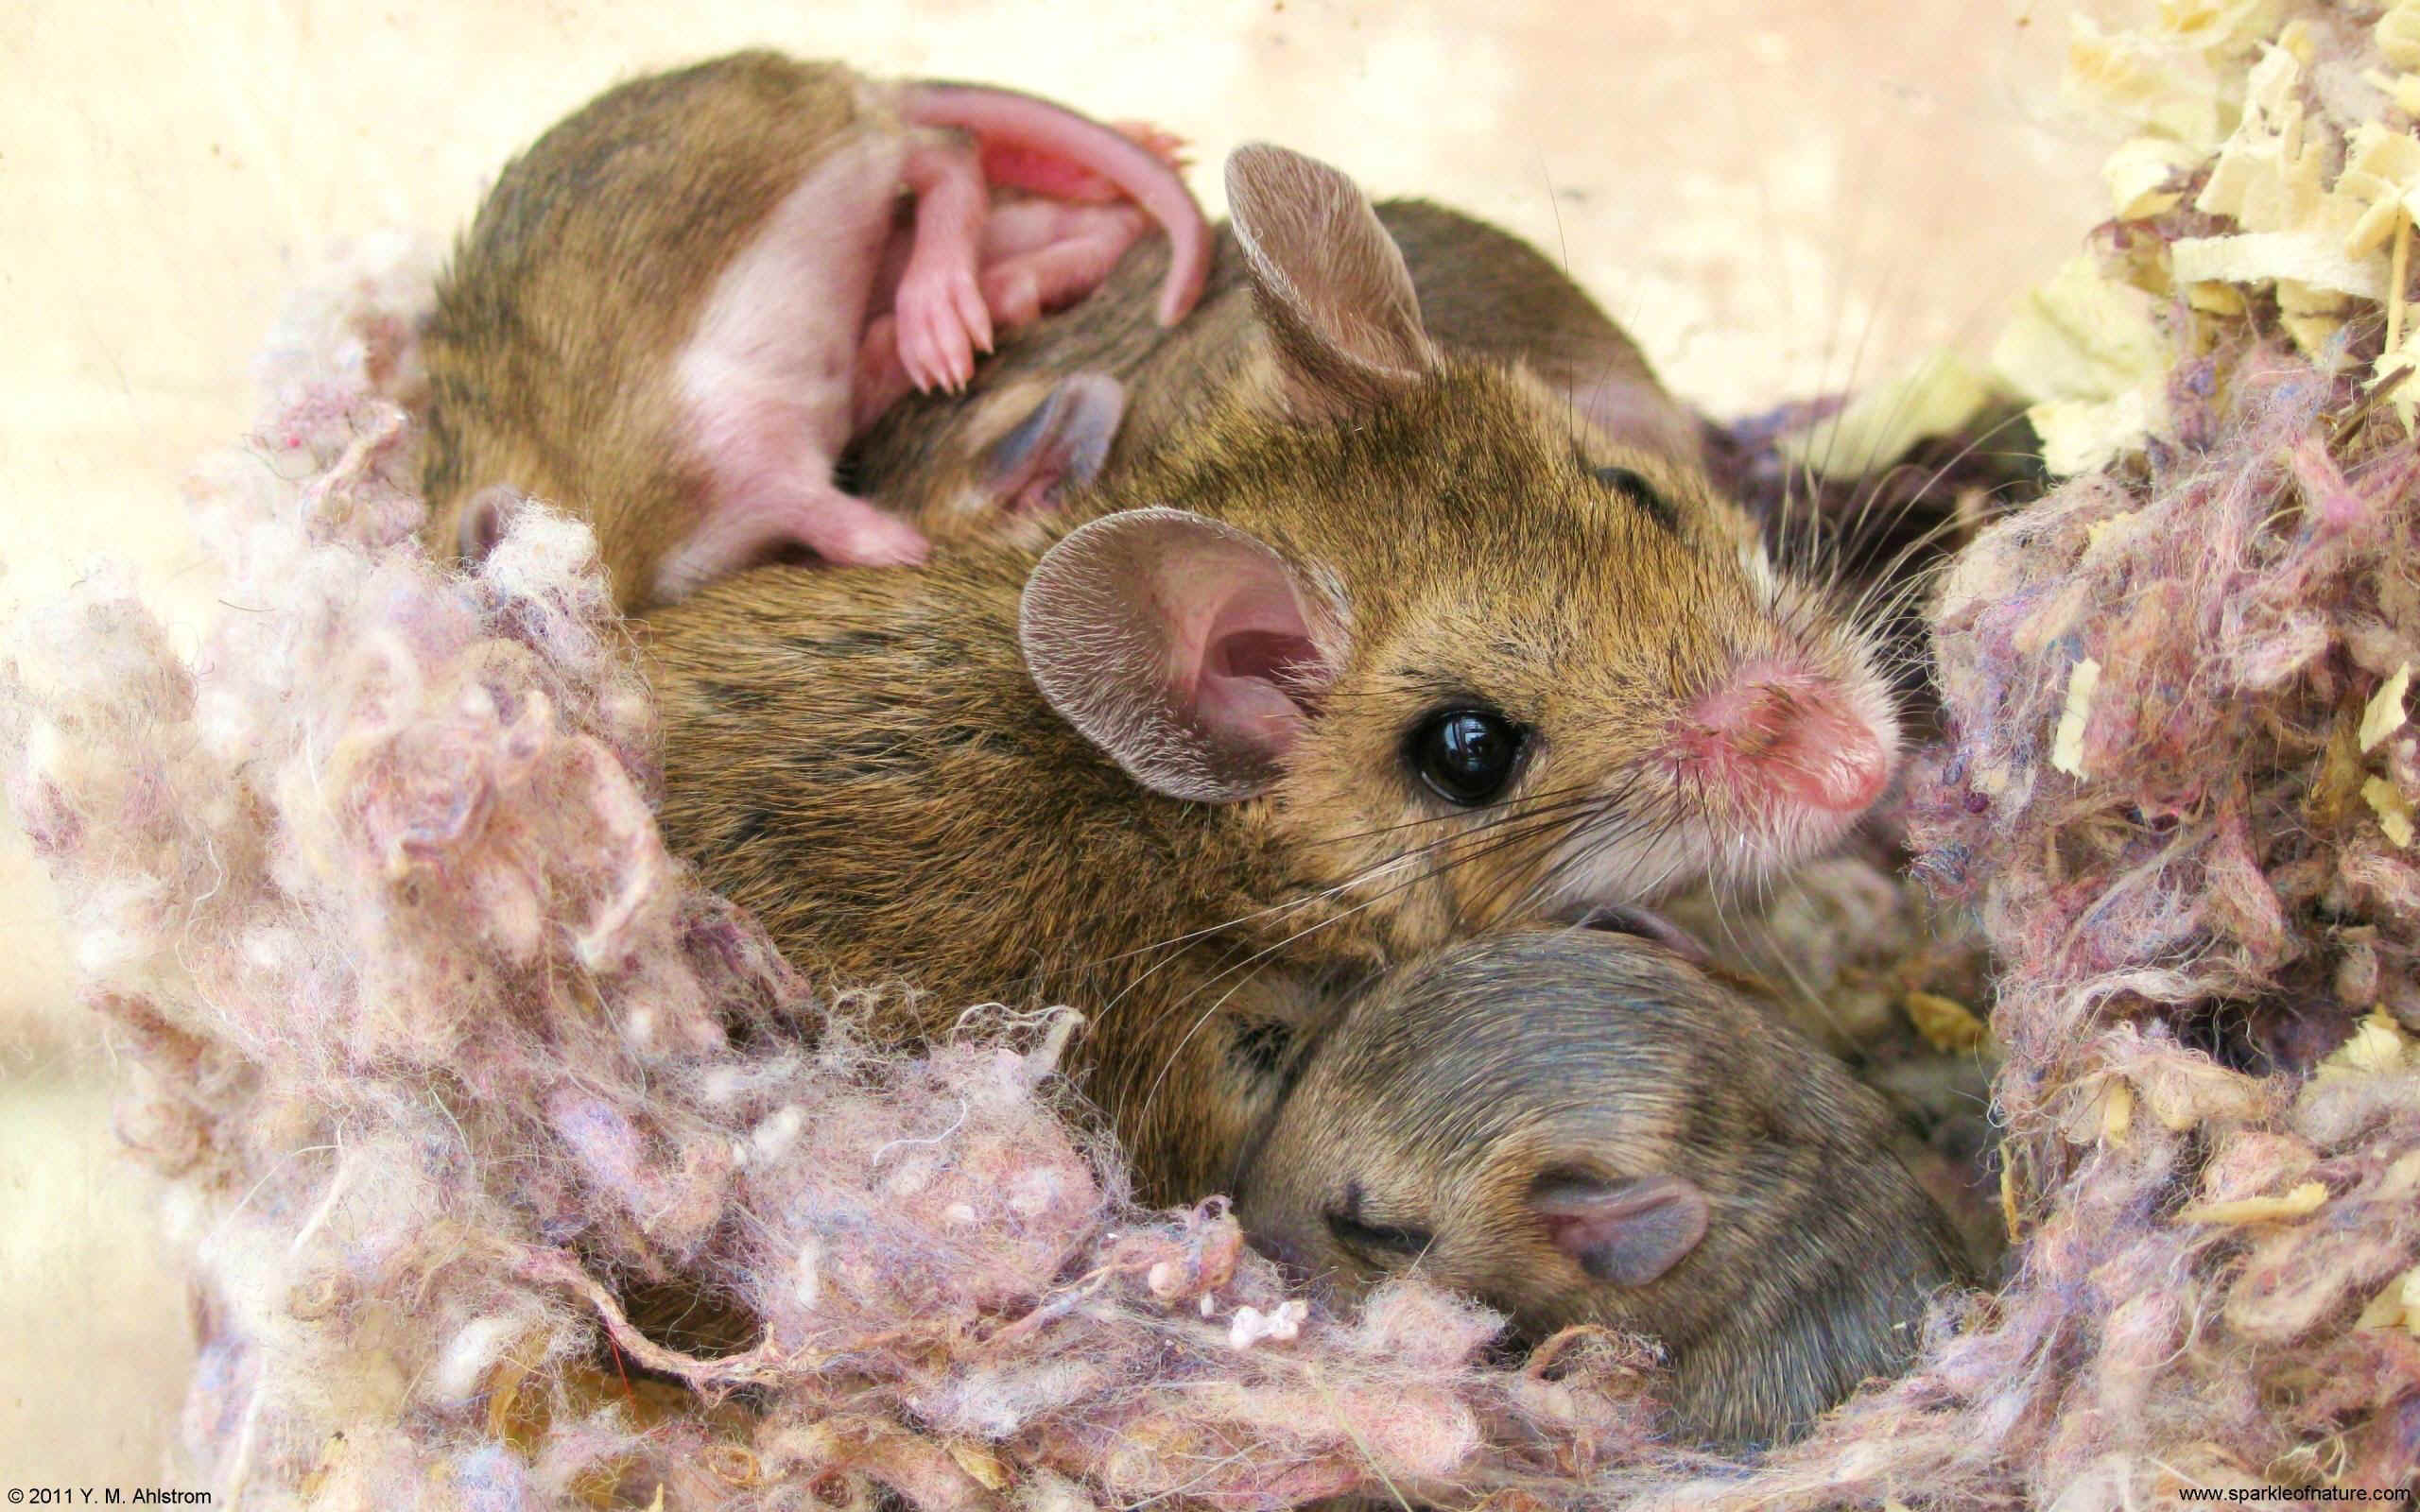 23459 mother mouse w 2560x1600.jpg (609052 bytes)